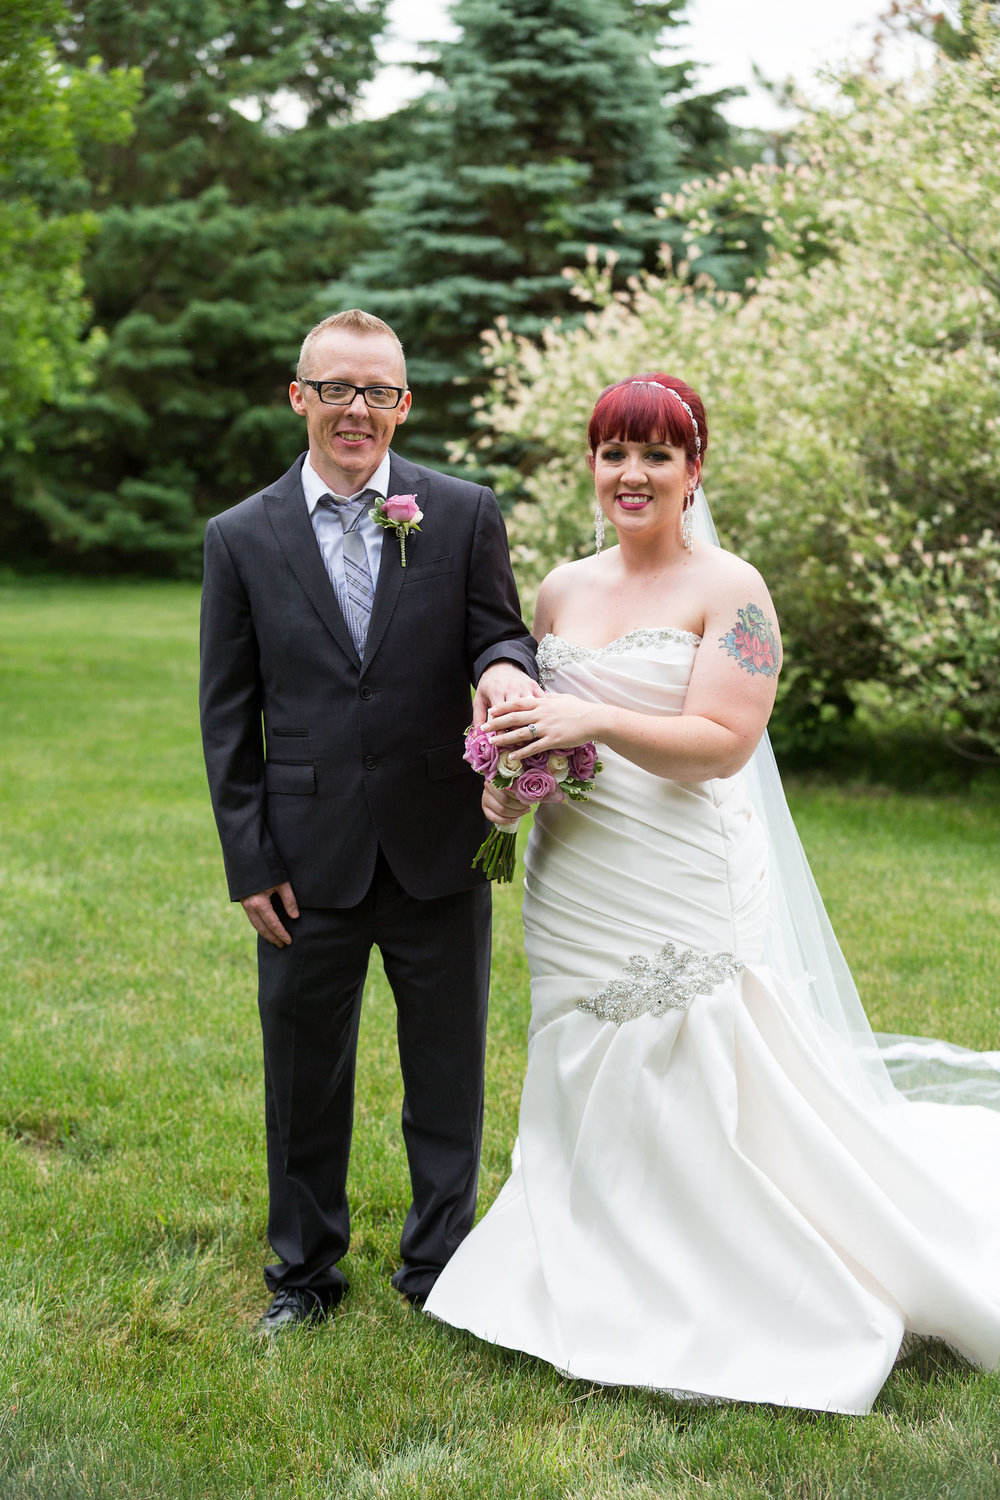 Cindyrella's Garden outdoor ceremony by the lake with a redhead bride, just married